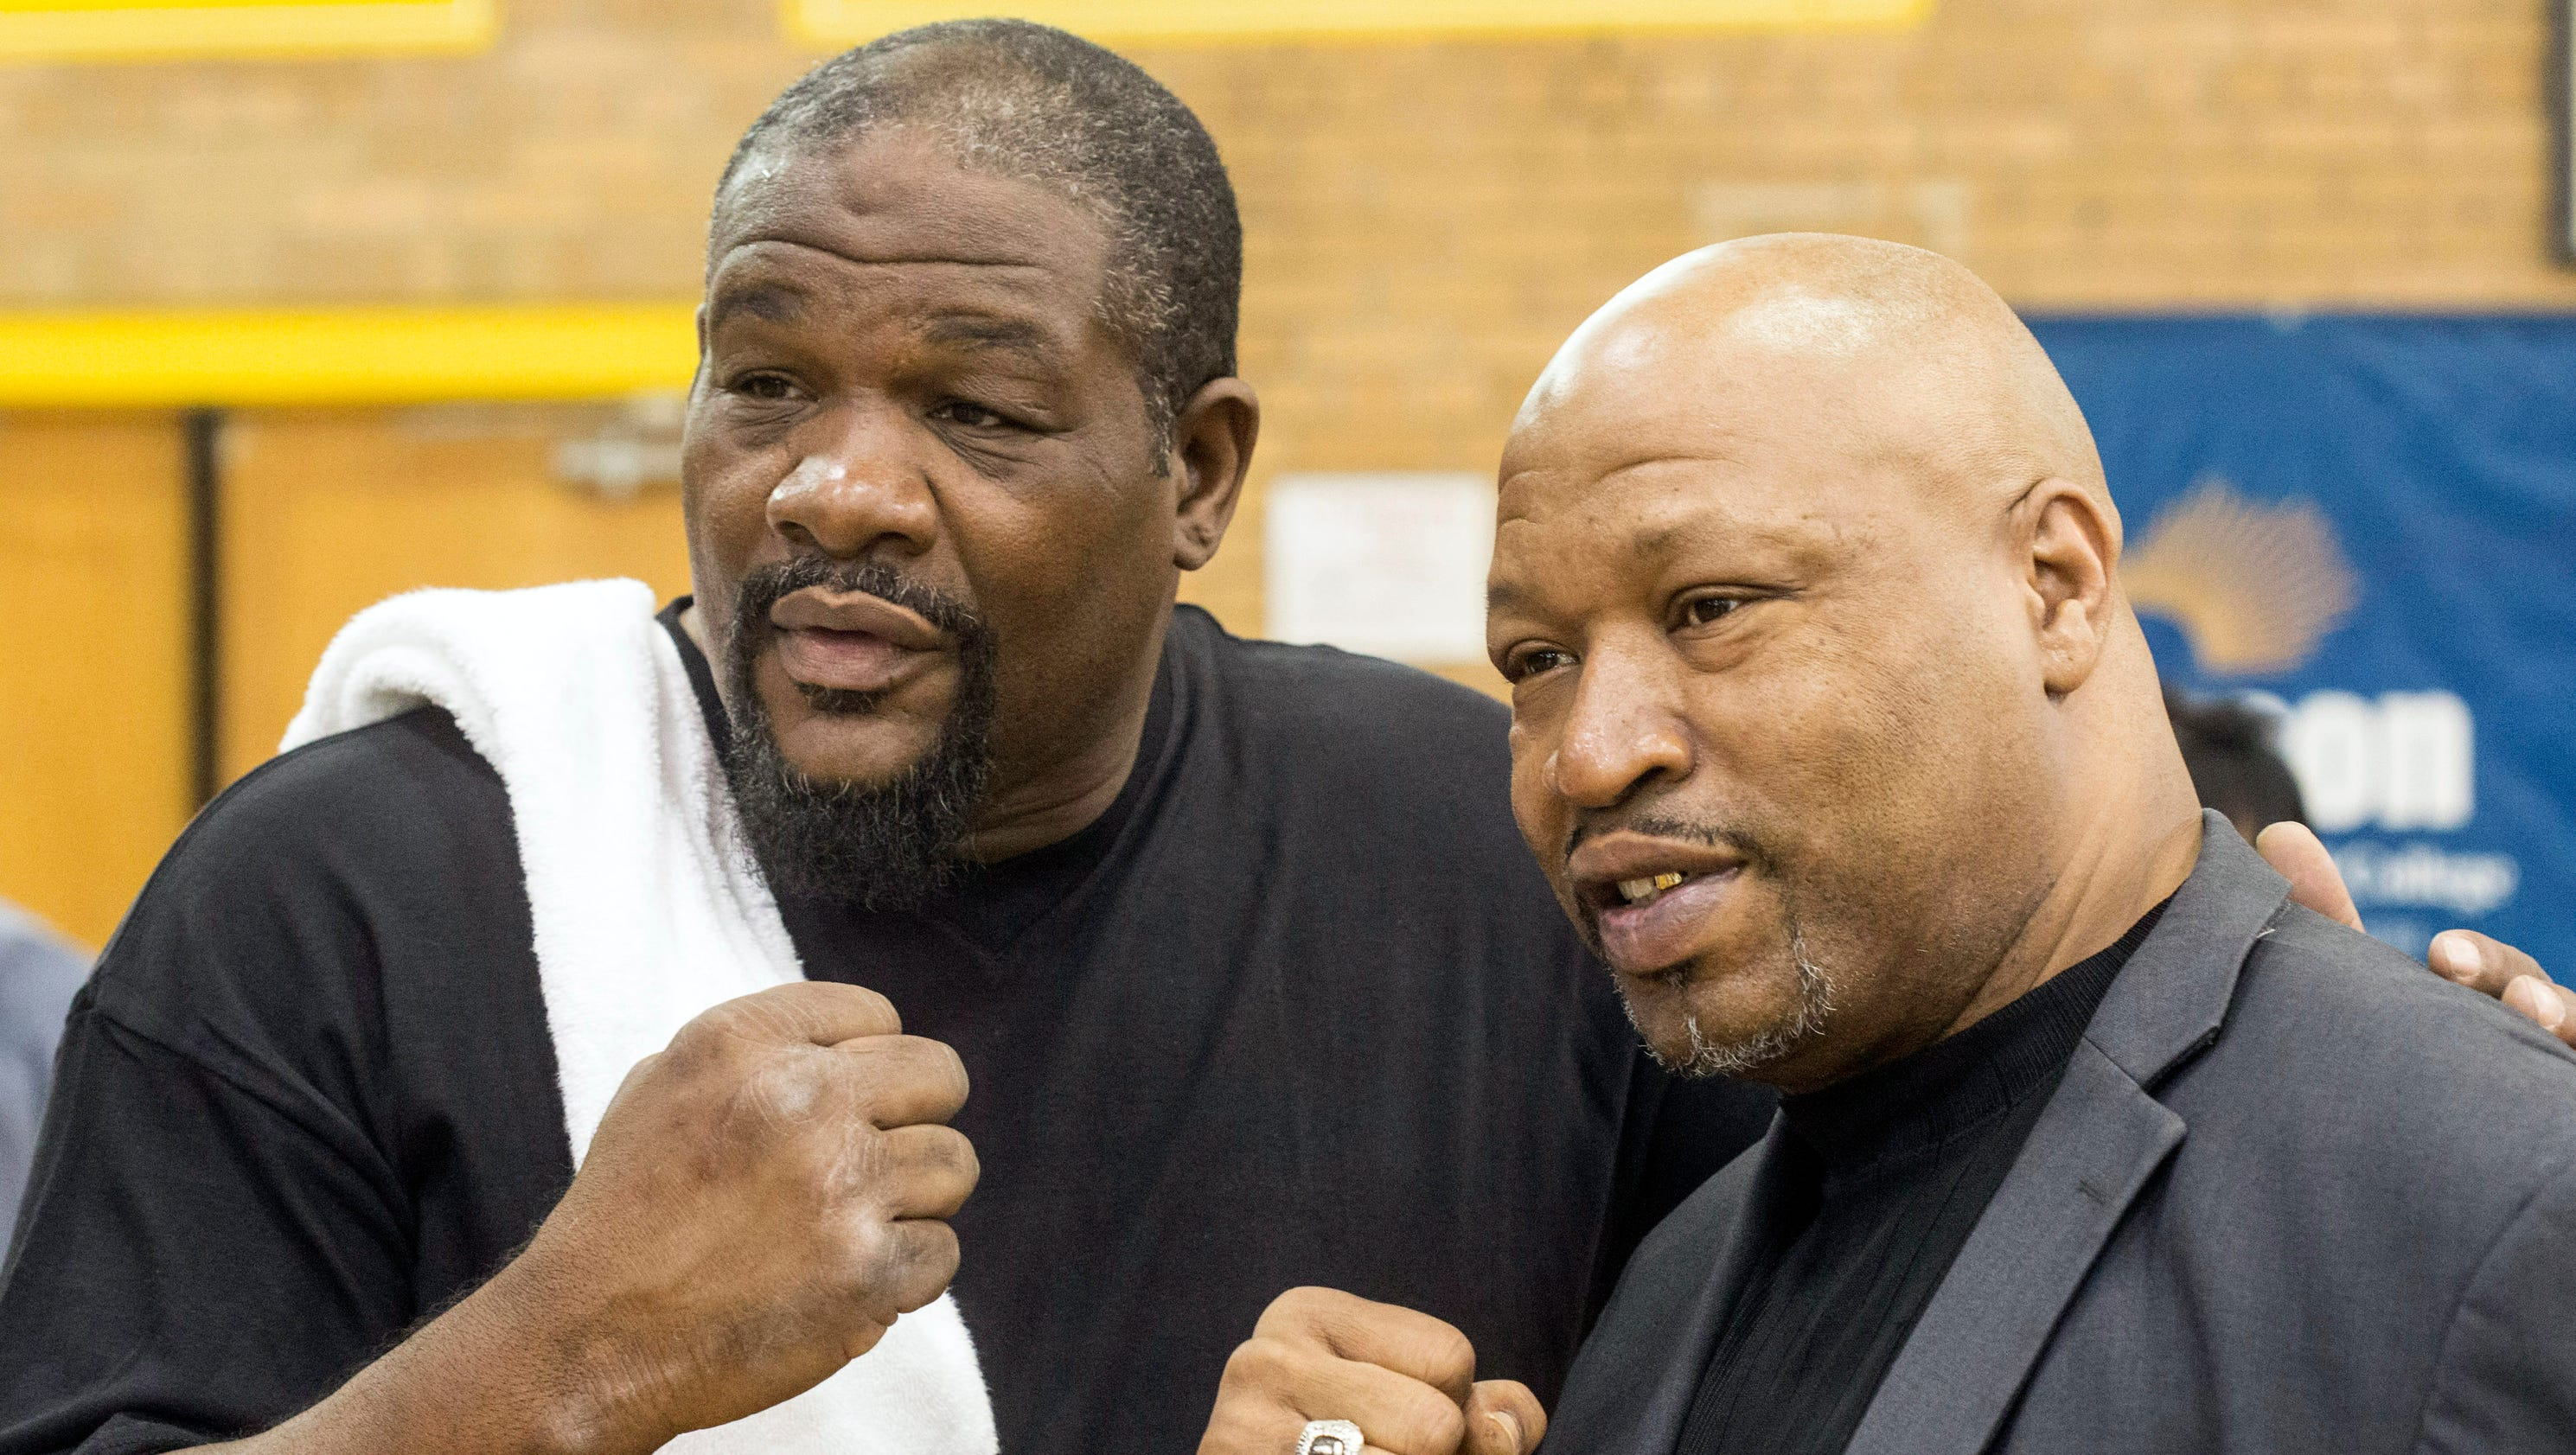 former champs riddick bowe  ray mercer visit students at central  ali u0026 39 s alma mater